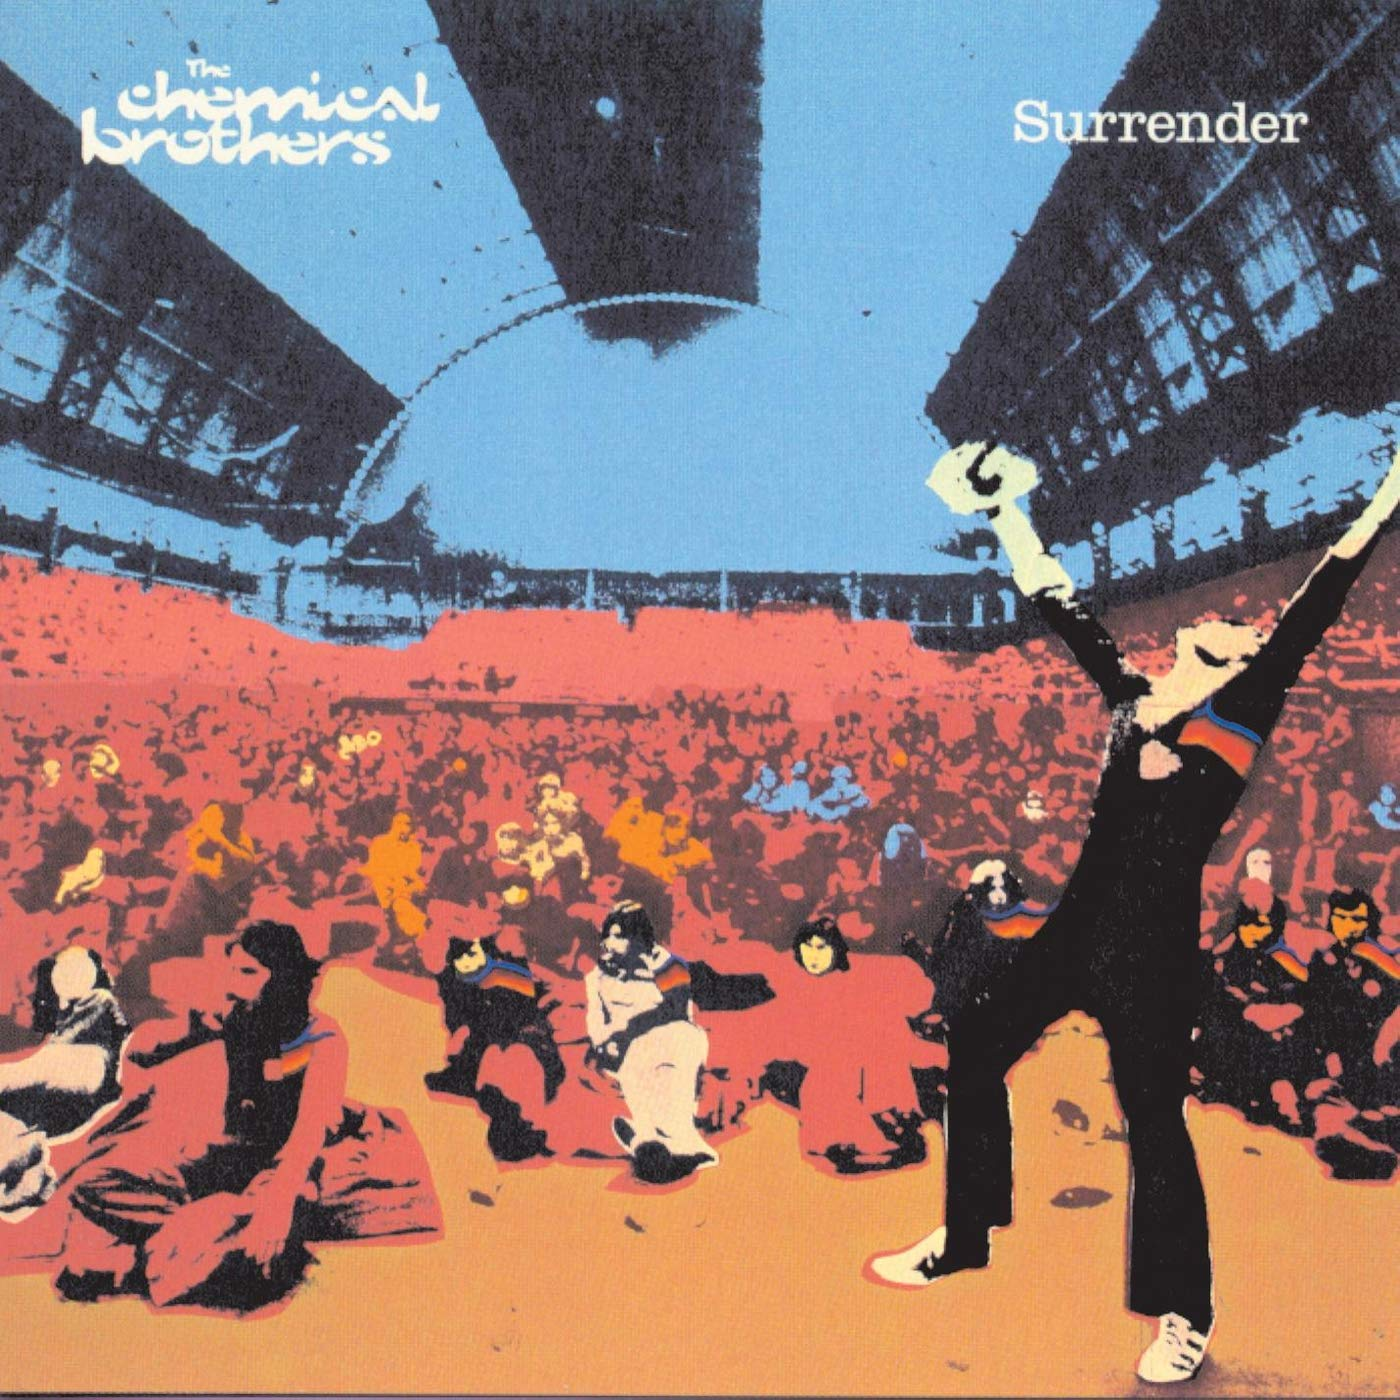 The Chemical Brothers - Surrender (20th Anniversary) (2019) [FLAC] Download